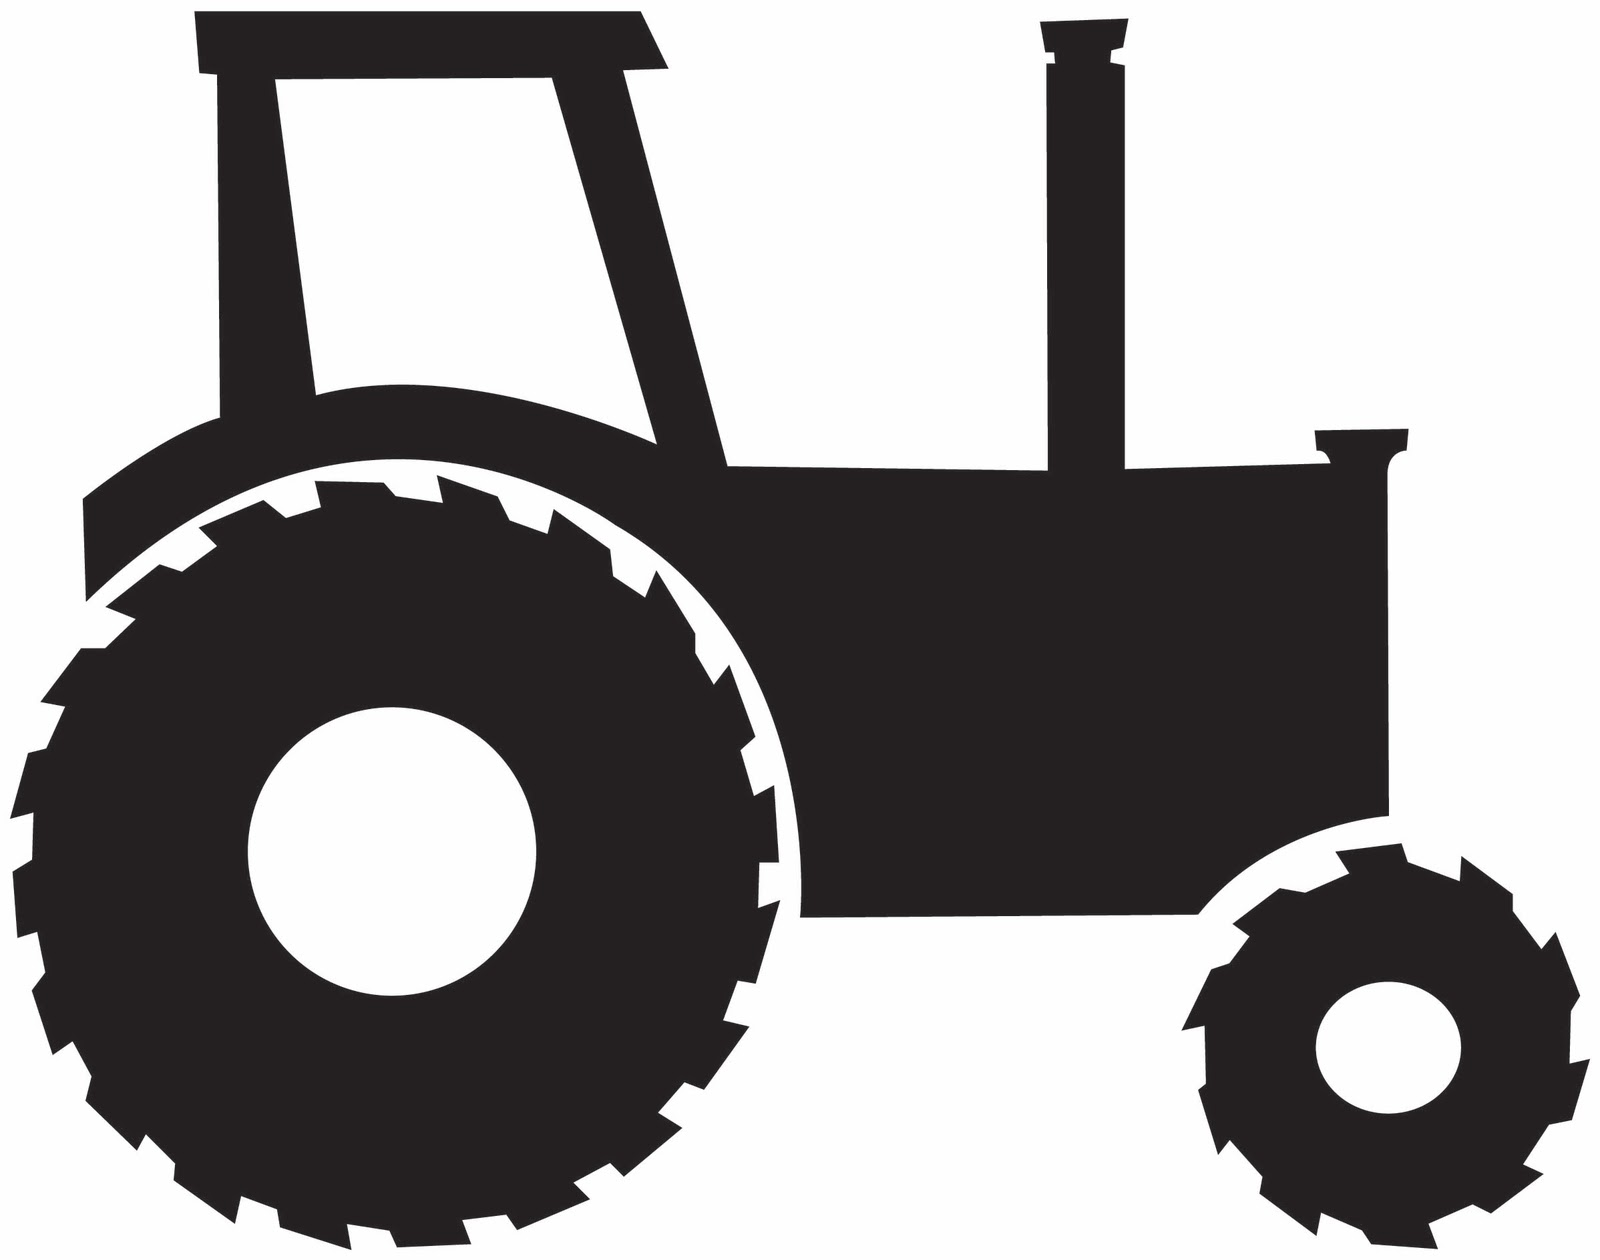 John deere clipart black and white clipart royalty free download Tractor Clipart Black And White - Free Clipart clipart royalty free download